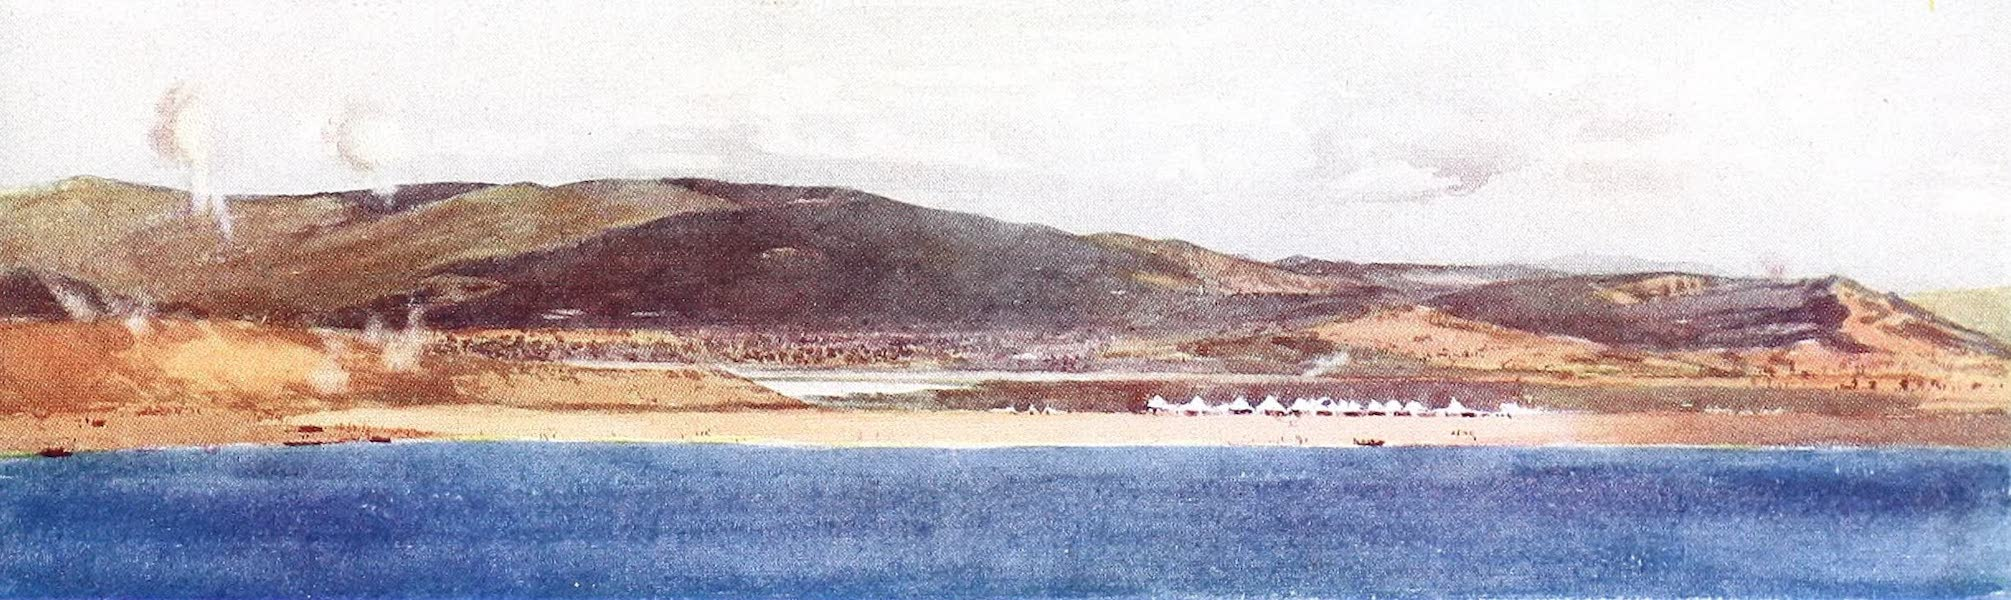 The Dardanelles : Colour Sketches from Gallipoli - Looking Towards the Village of Anafarta (1915)